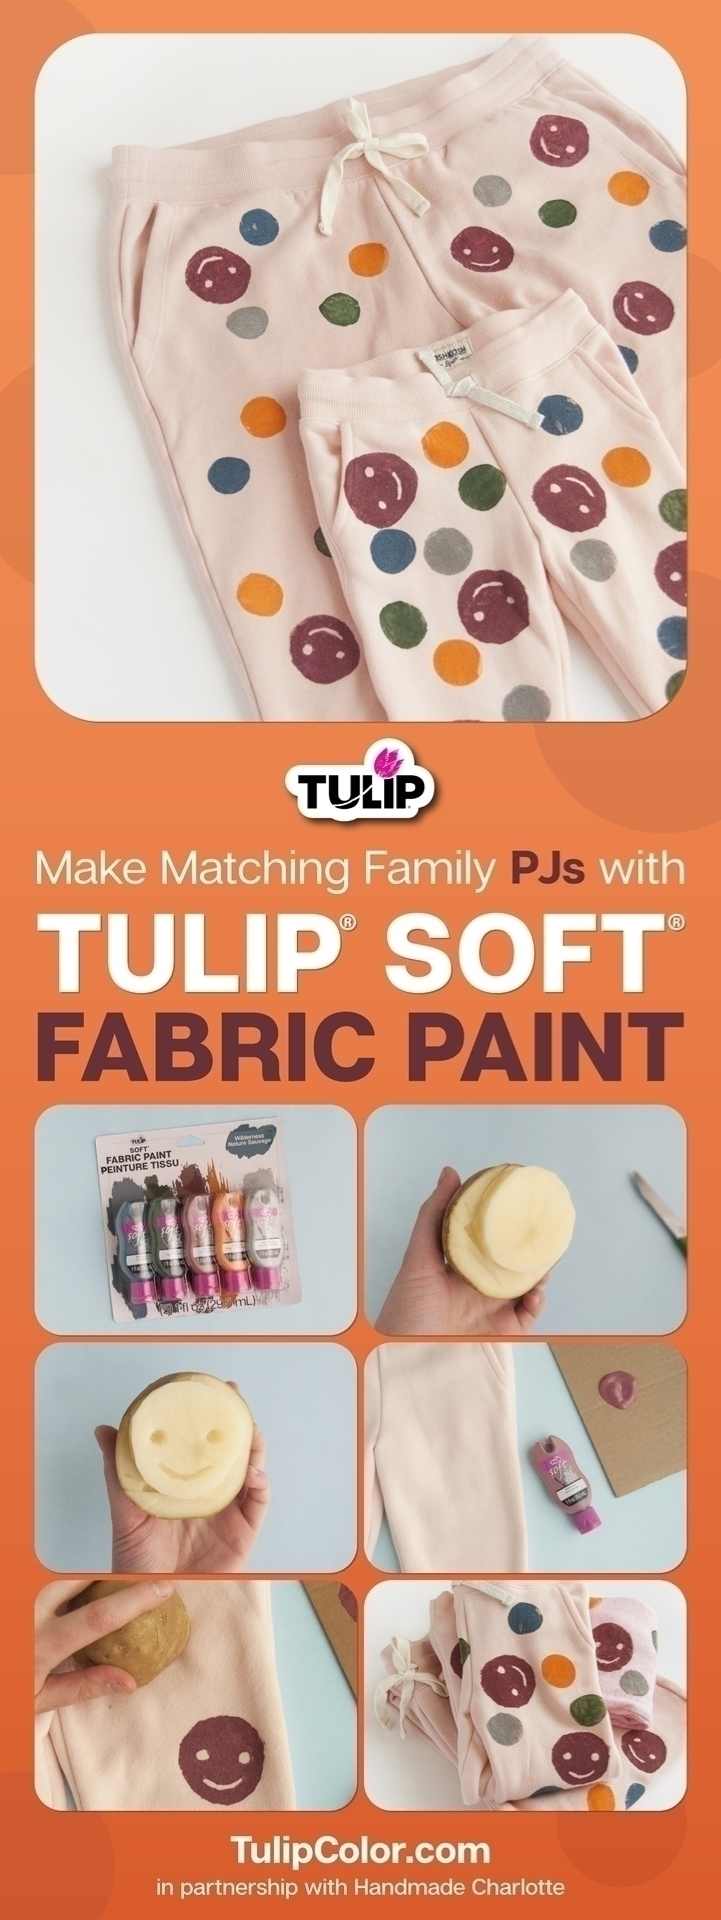 How to Use Fabric Paint for Matching Family PJs